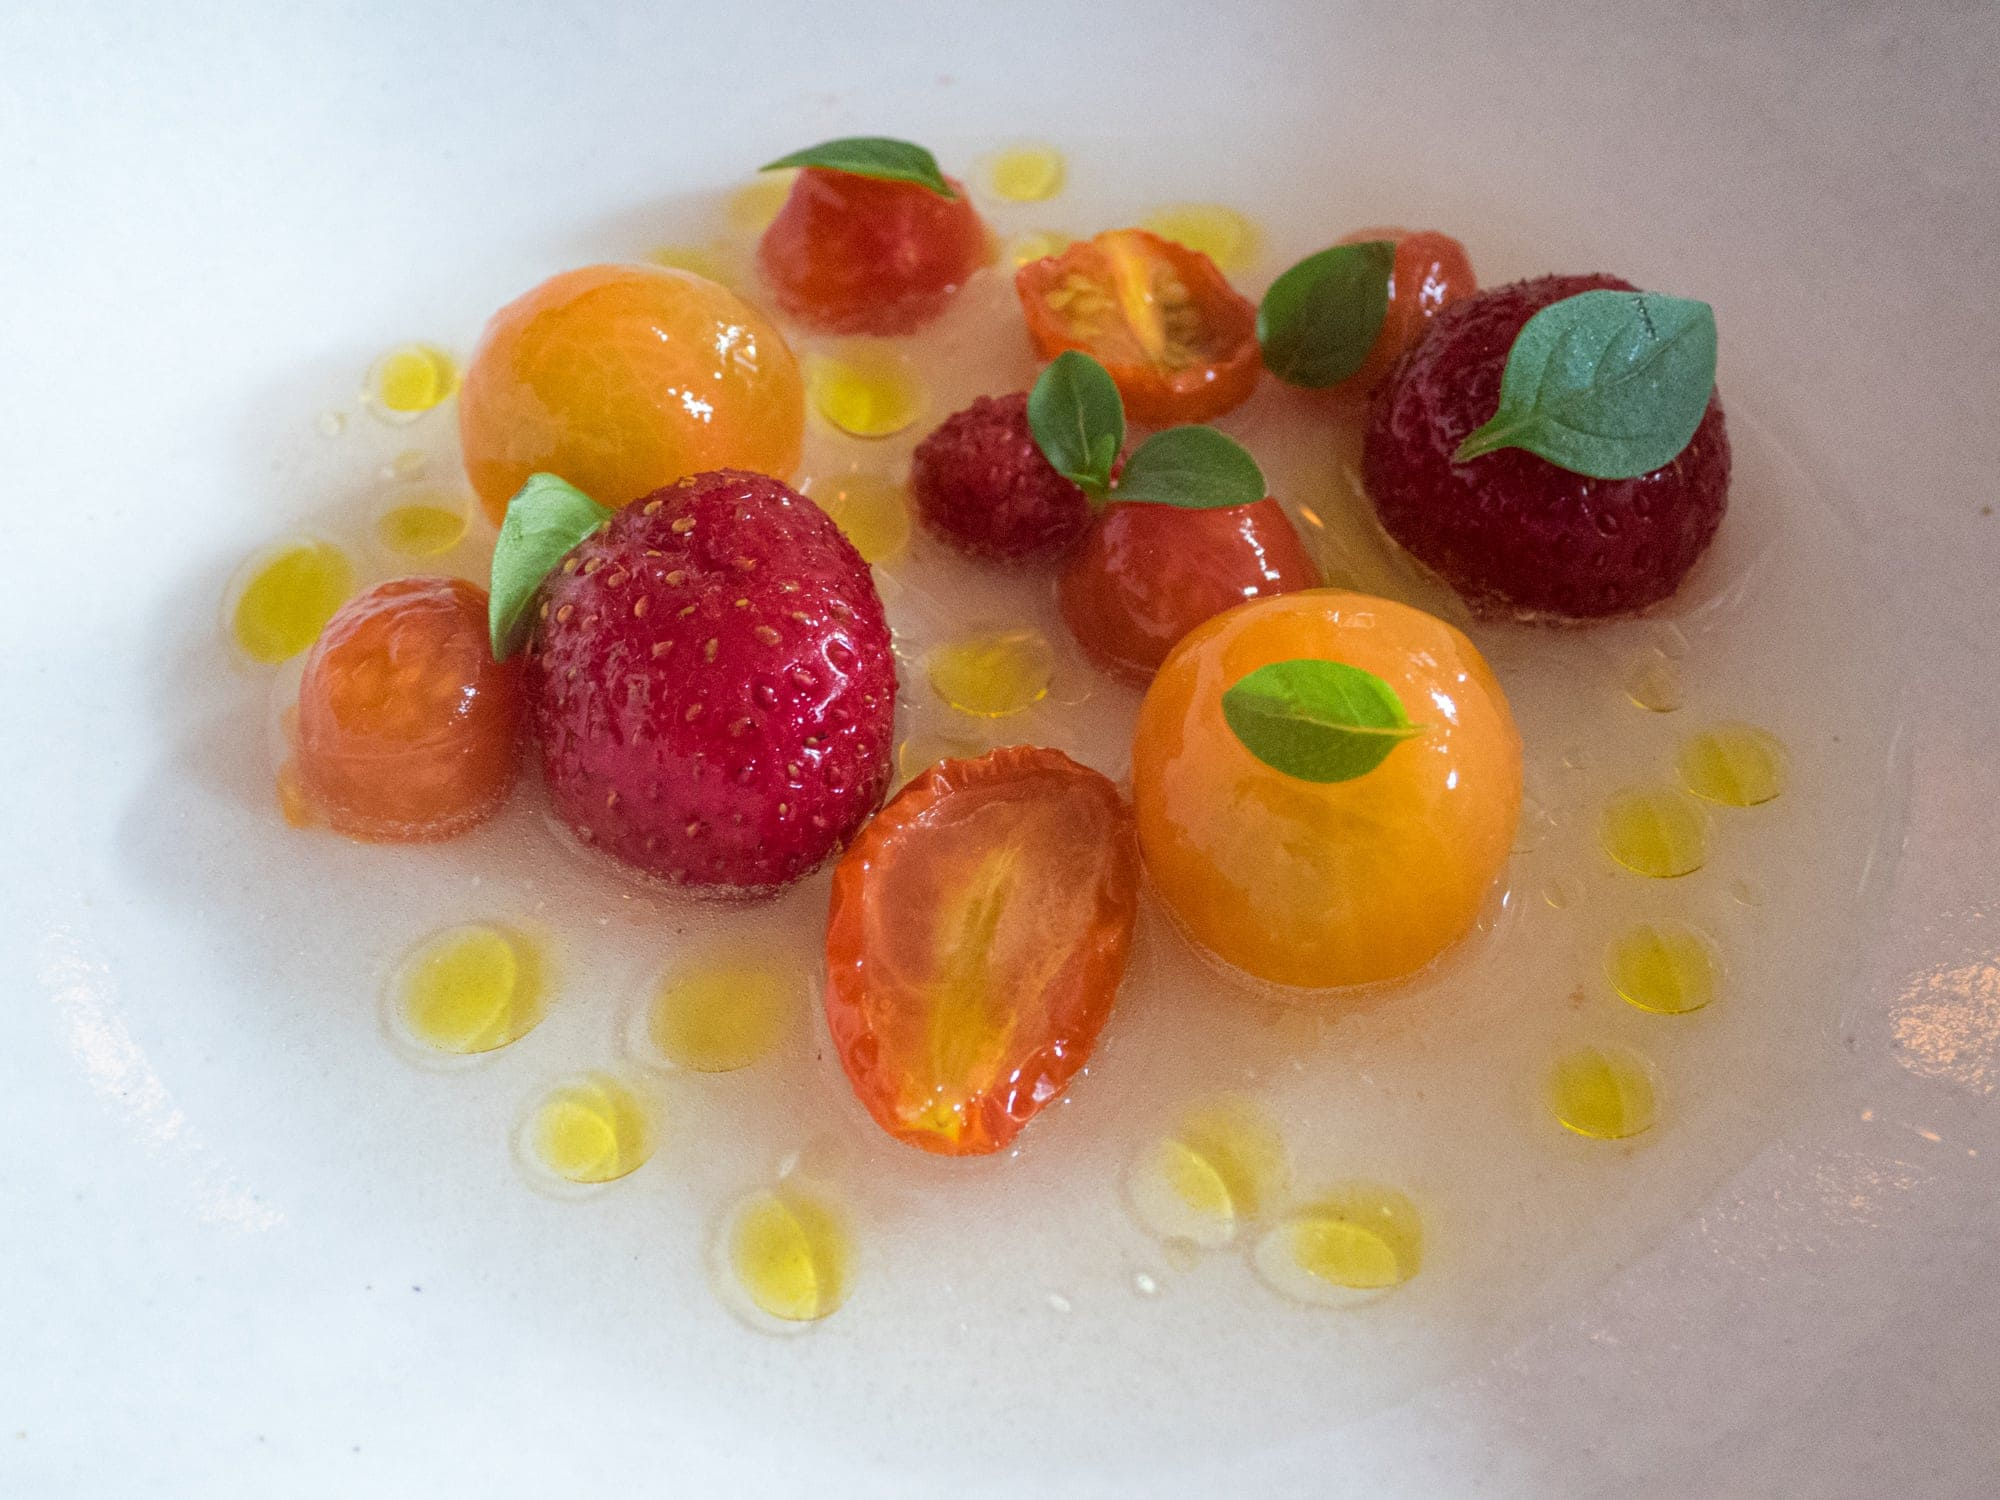 Tomatoes and strawberries at Eleven Madison Park, rated the world's best restaurant in 2017